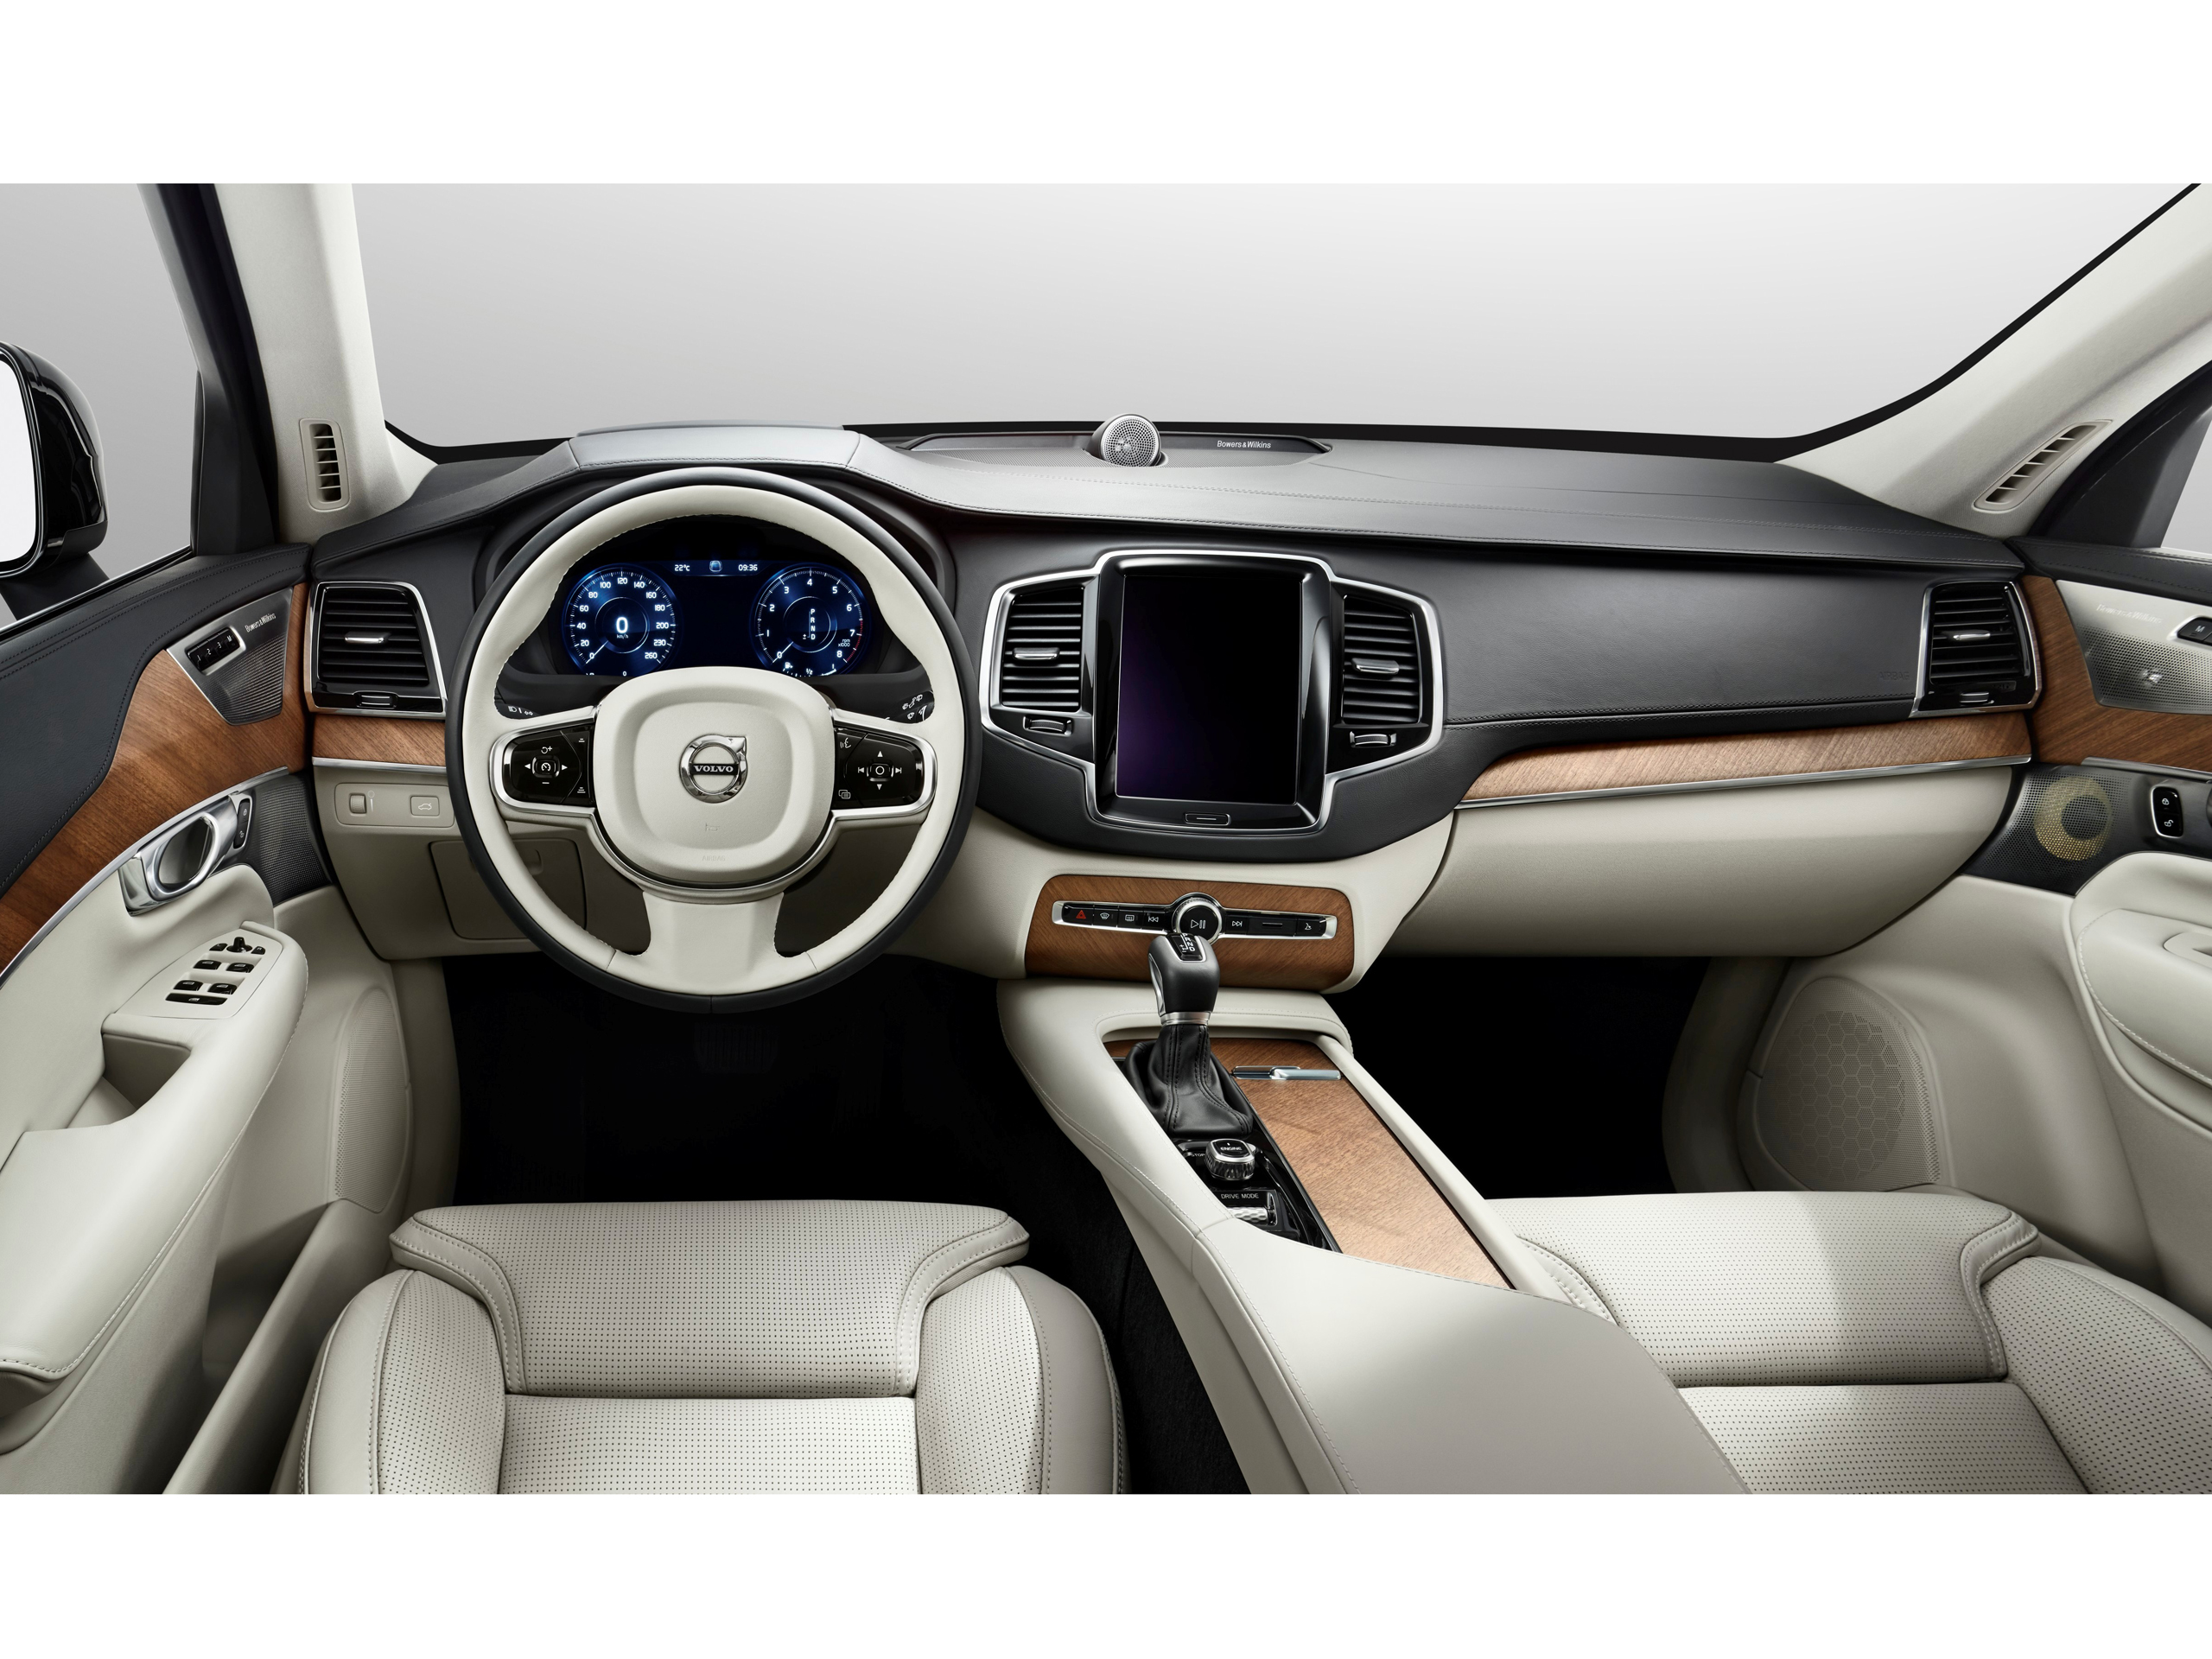 volvo xc90 2015 erste innenraum bilder. Black Bedroom Furniture Sets. Home Design Ideas